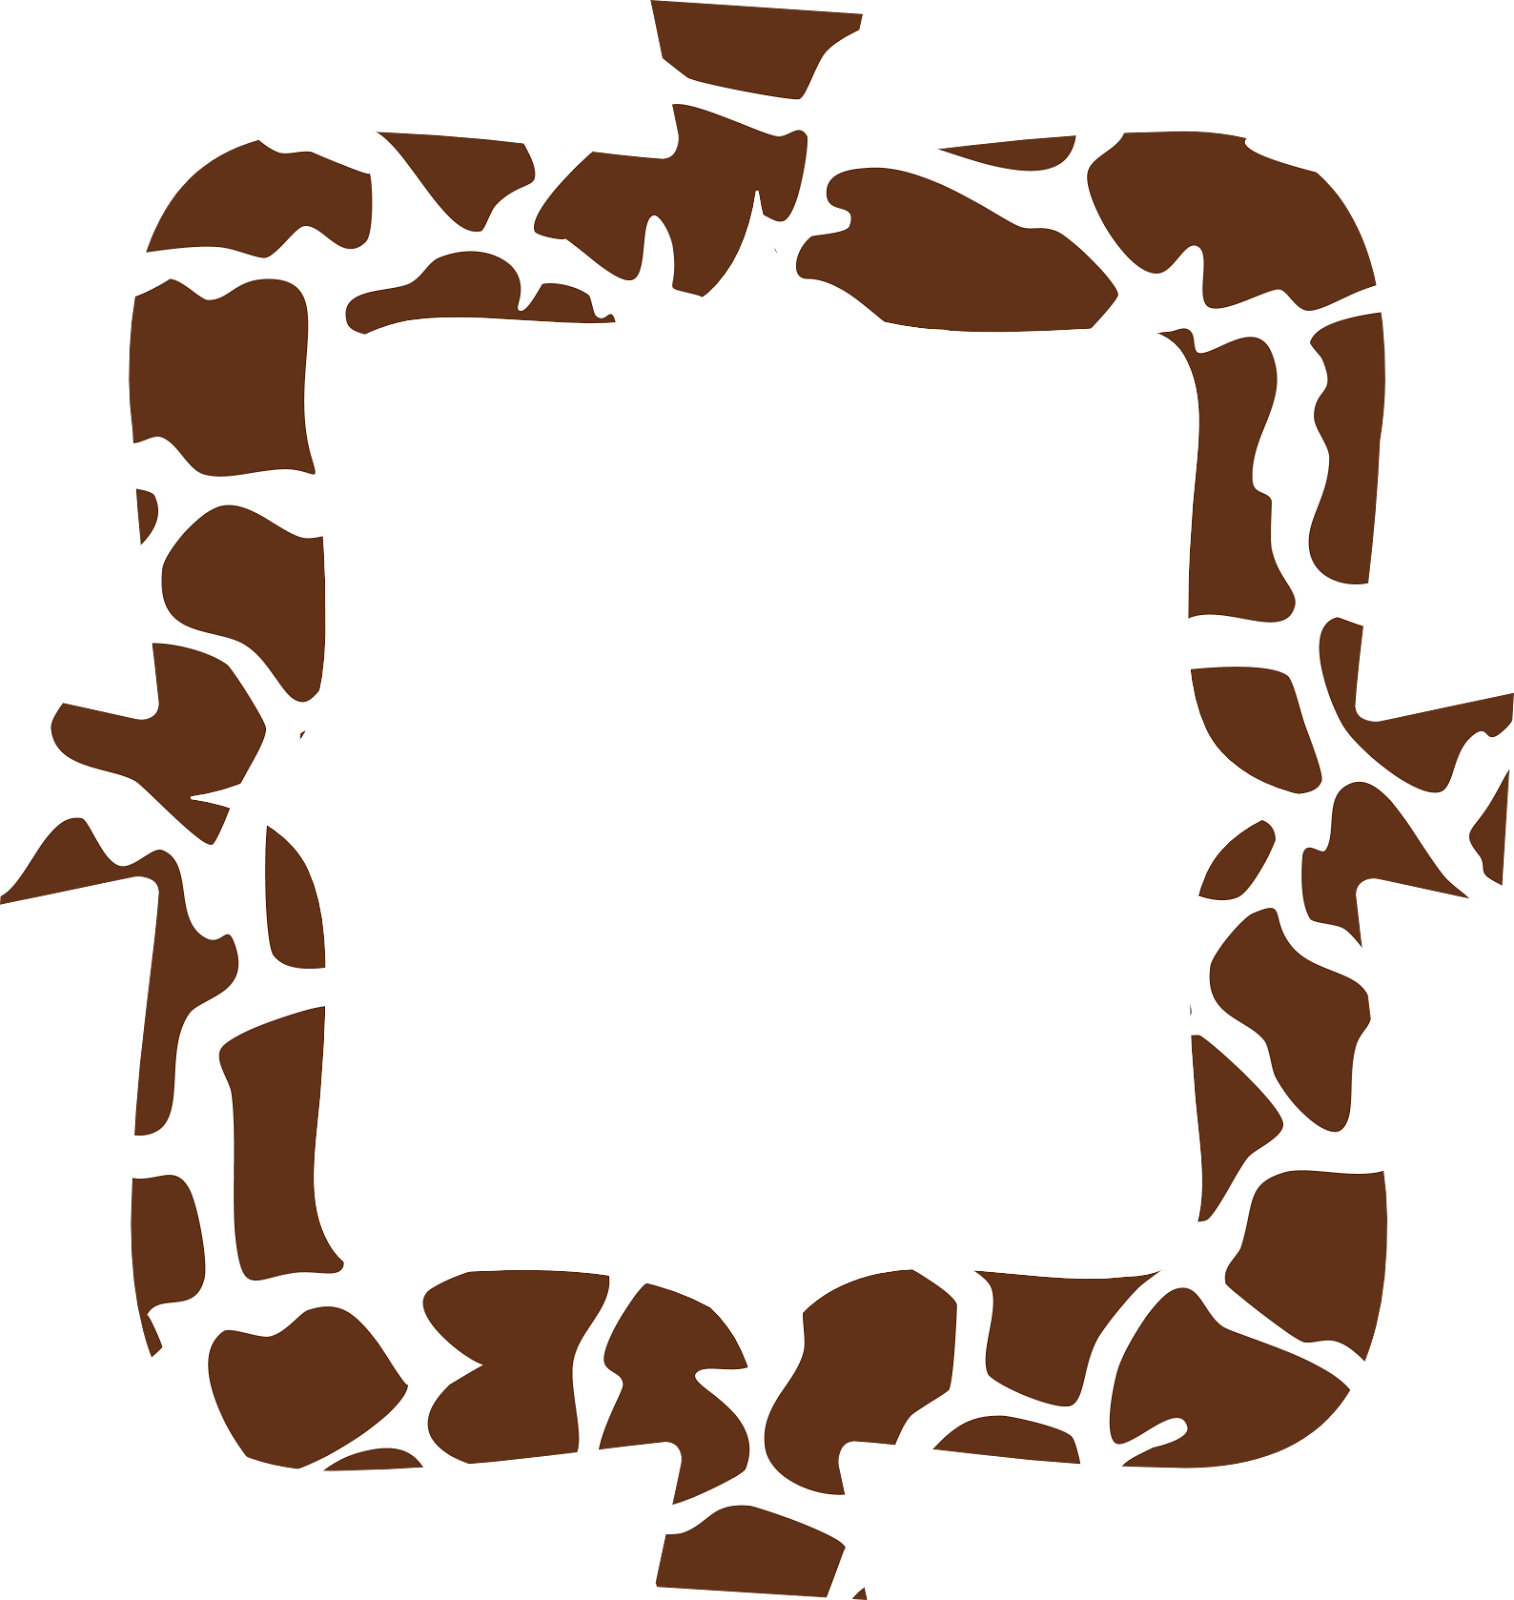 http://www.teacherspayteachers.com/Product/Limited-Time-Freebie-Animal-Print-Frames-1371756